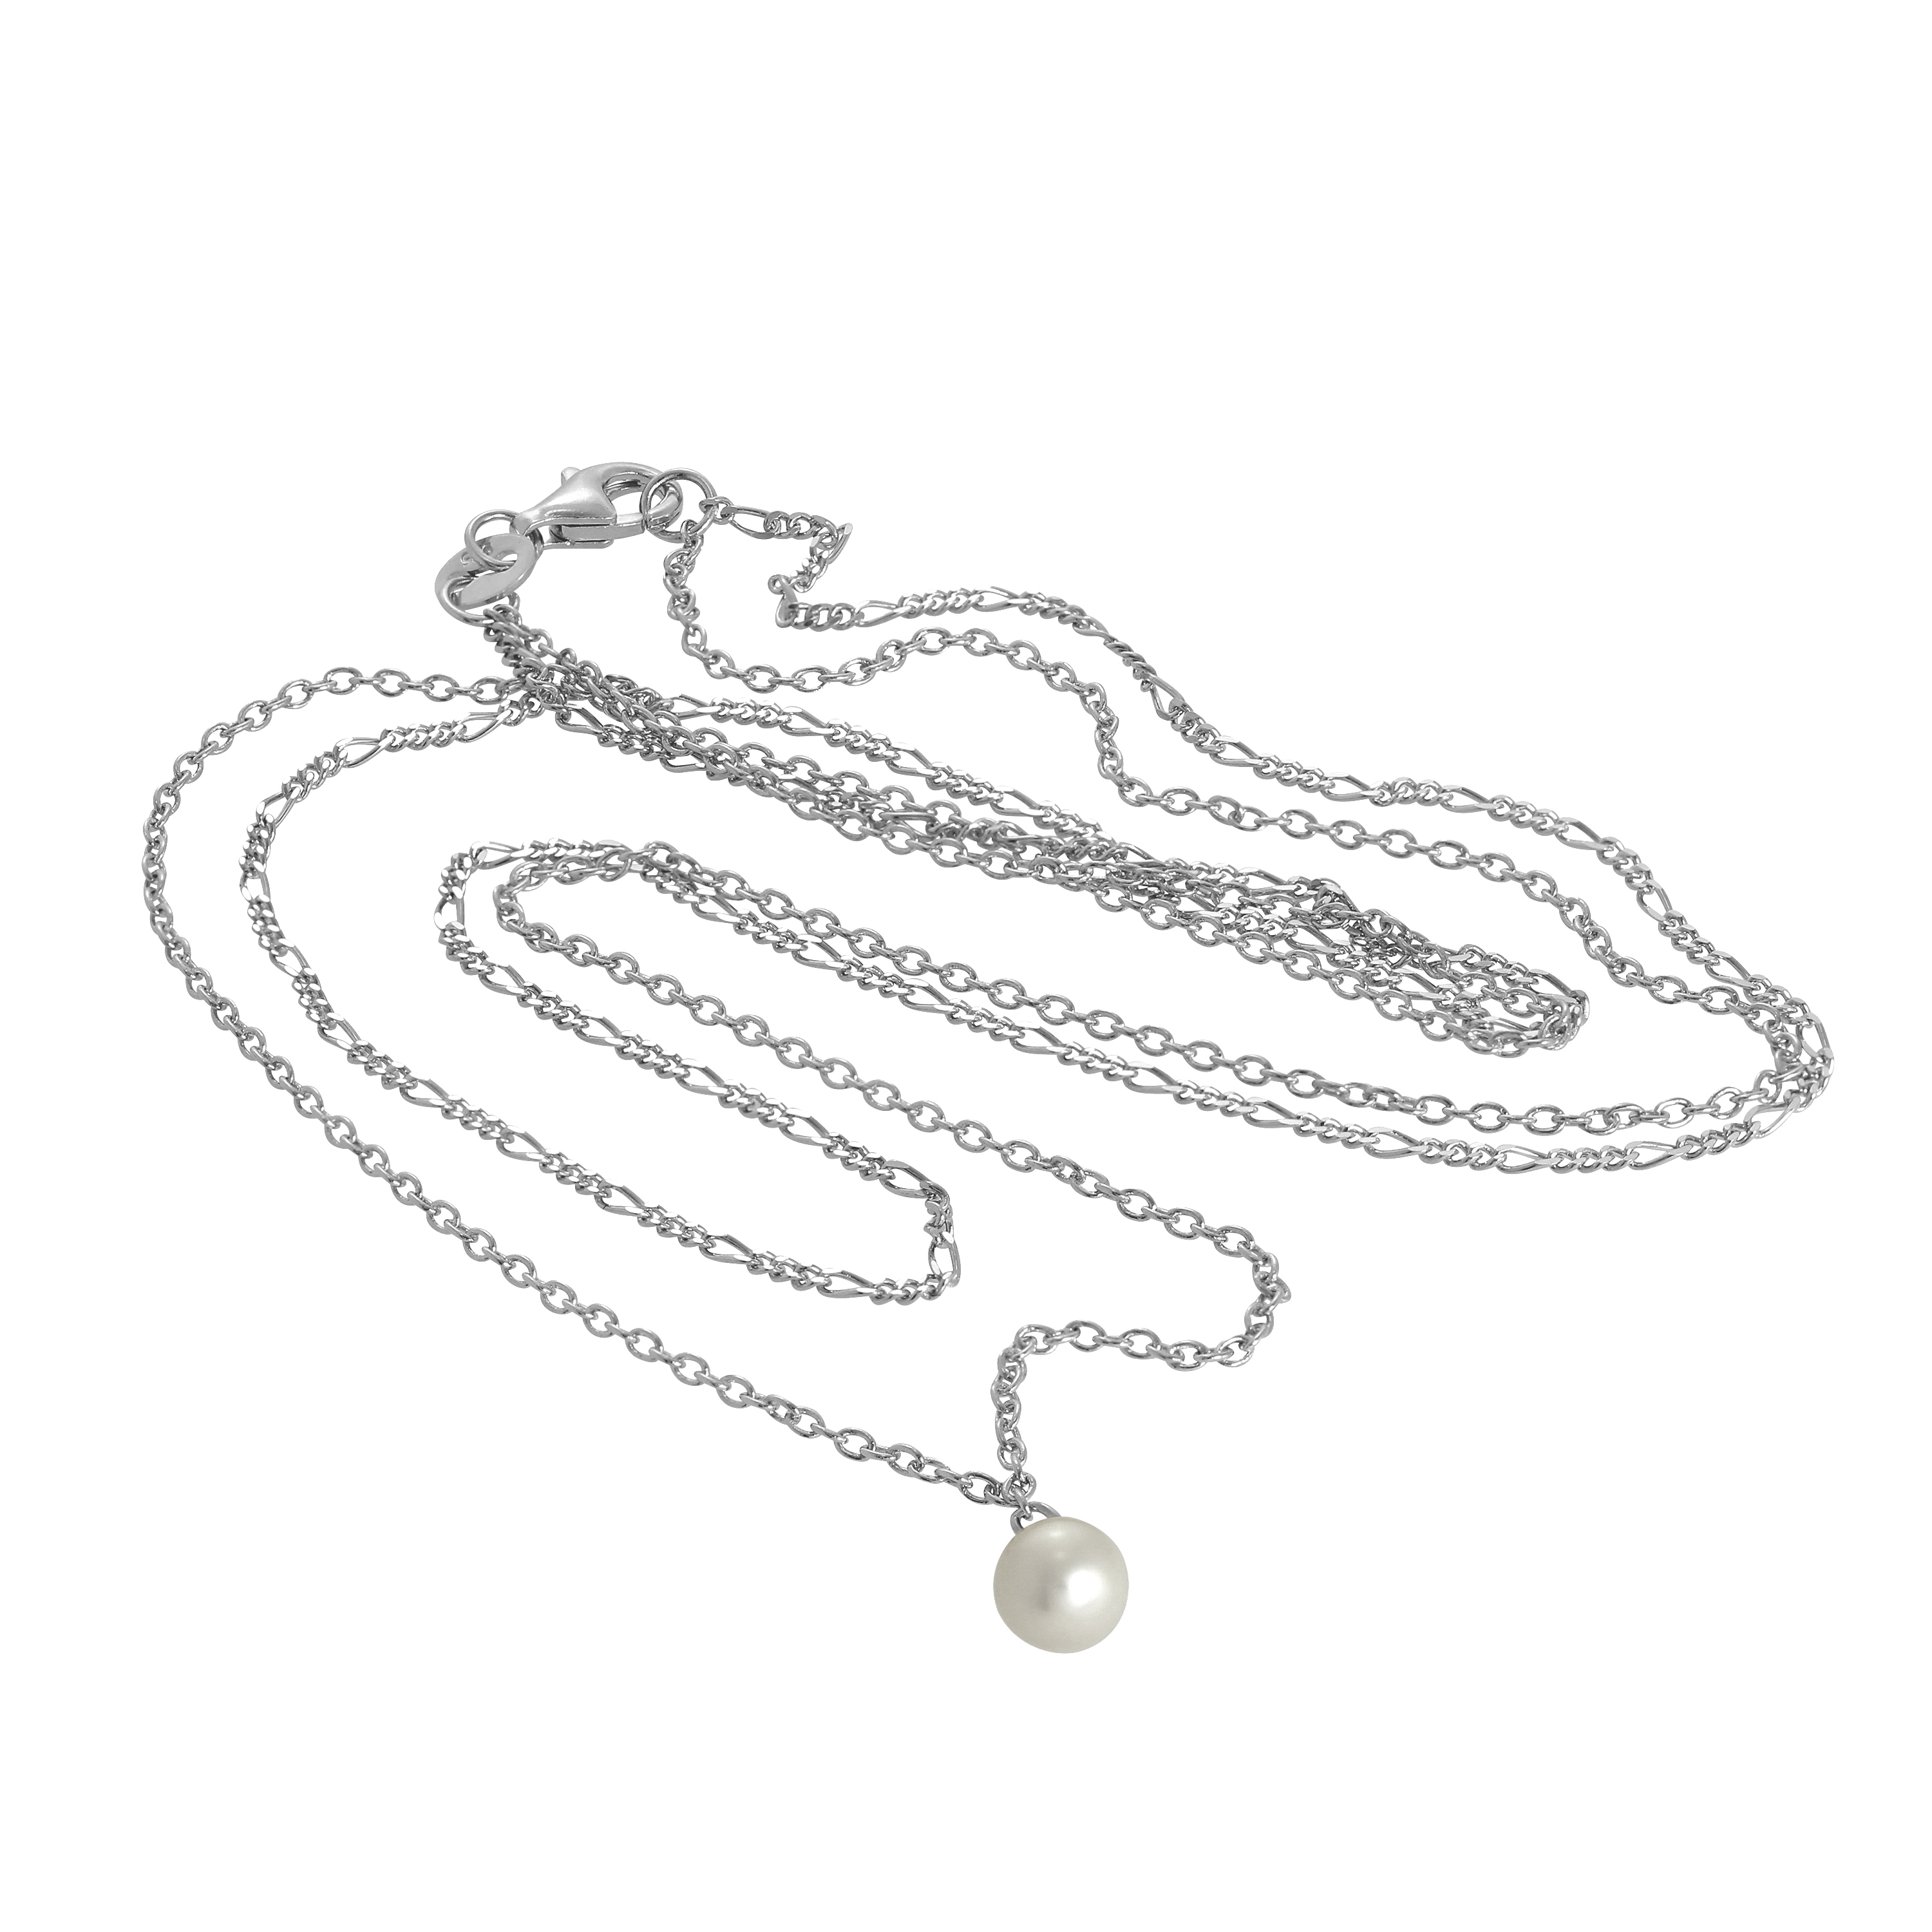 Real 925 Sterling Silver Double Chain Pearl Necklace 16